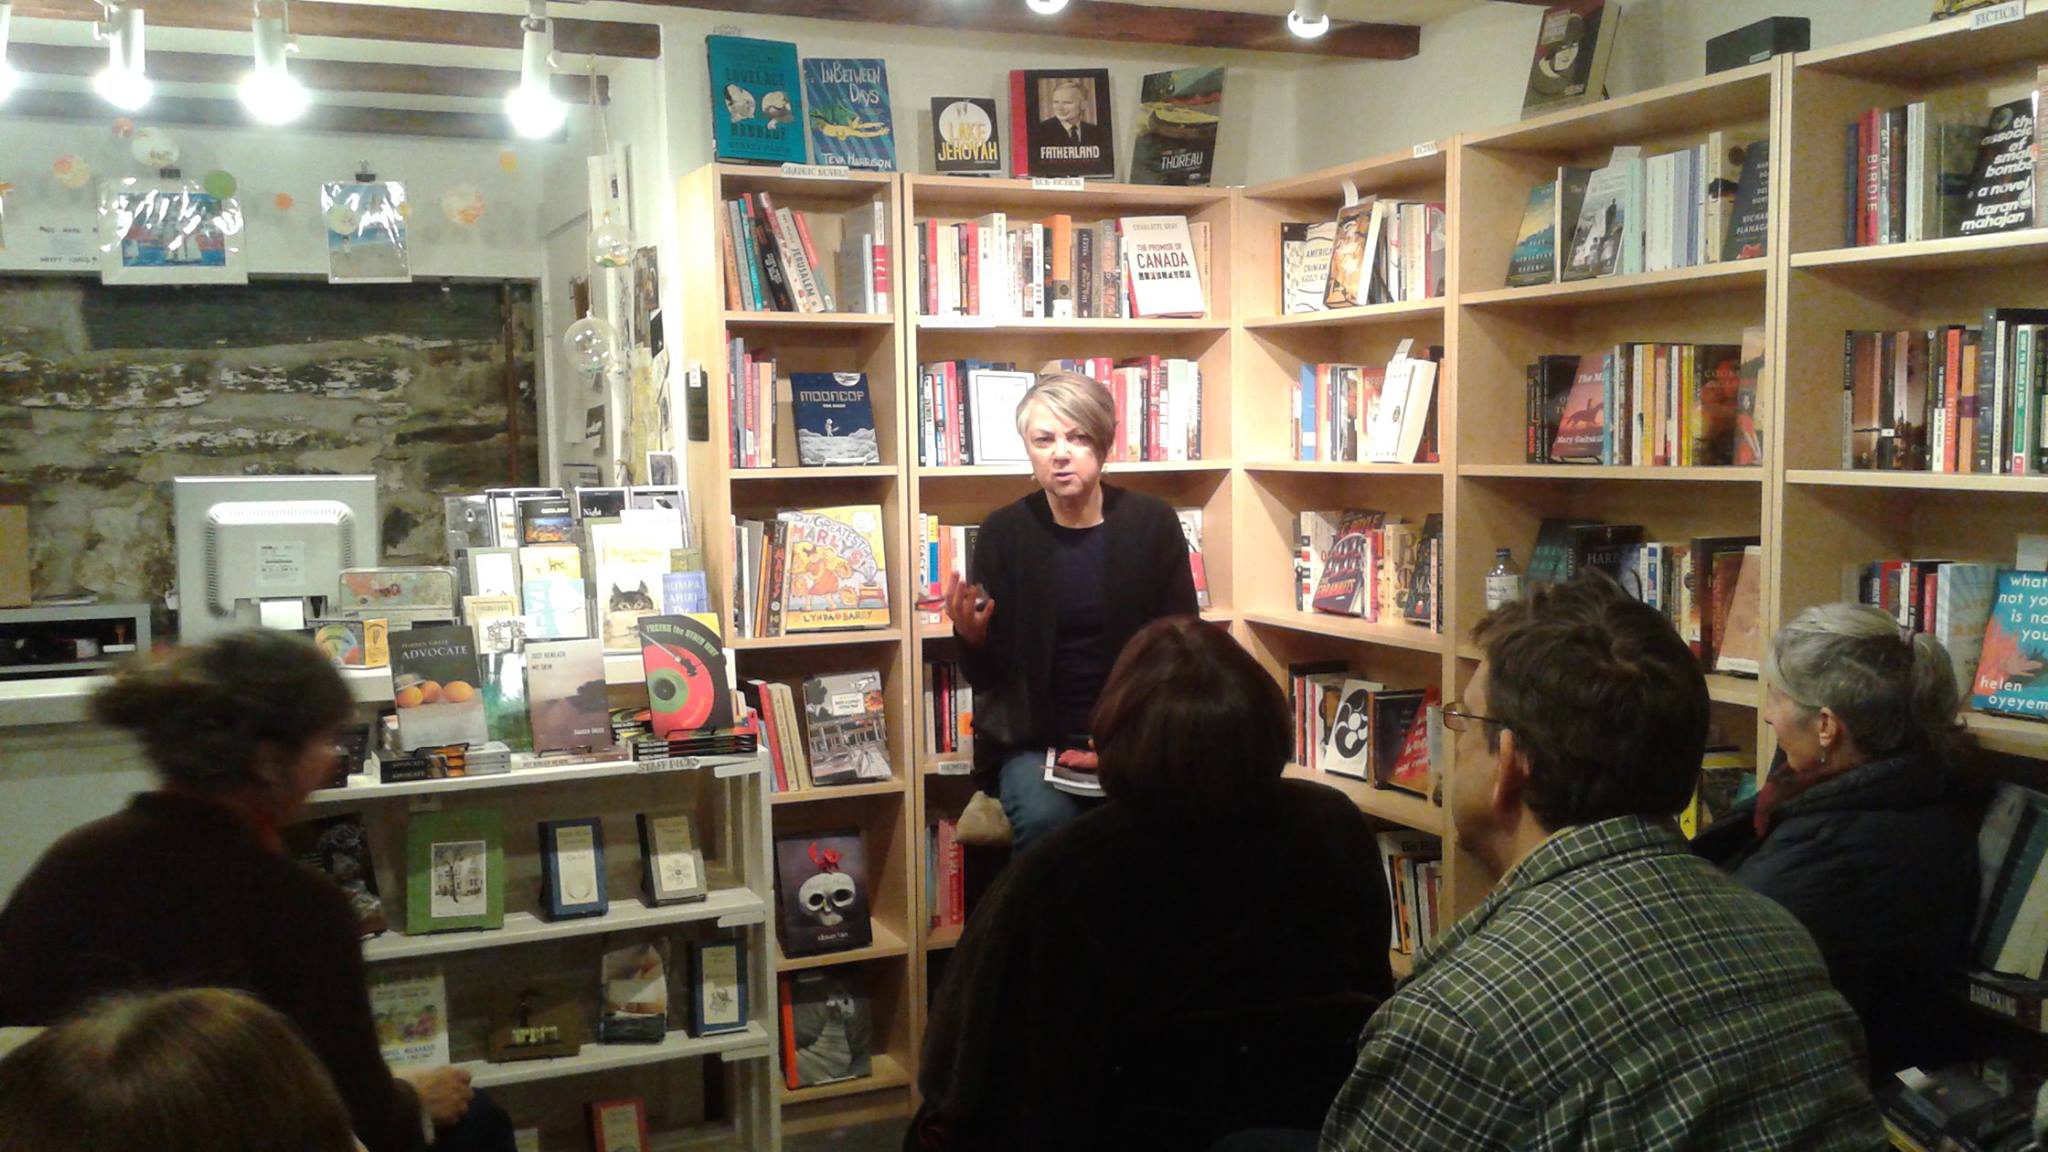 C.S. Reardon launched her debut novel The Spanish Boy. There was a very illuminating Q & A afterwards as well.